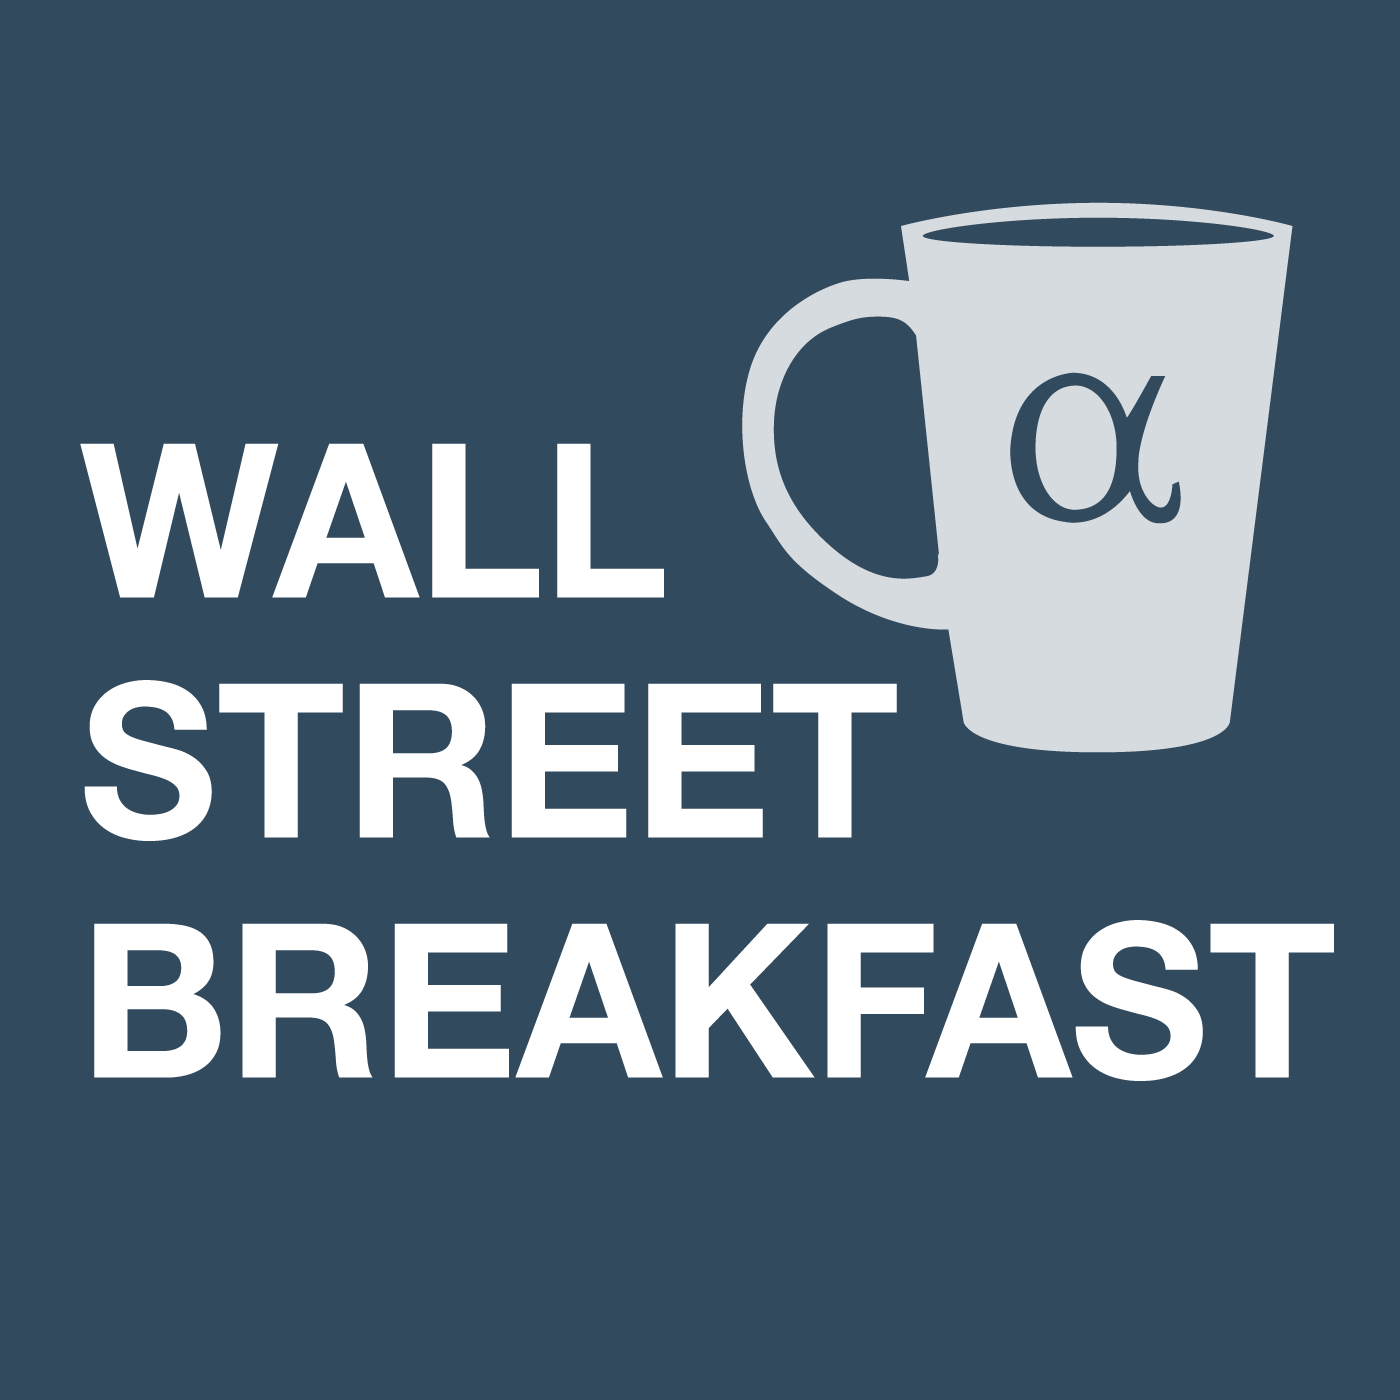 Wall Street Breakfast July 9: Reopening The Most Magical Place On Earth